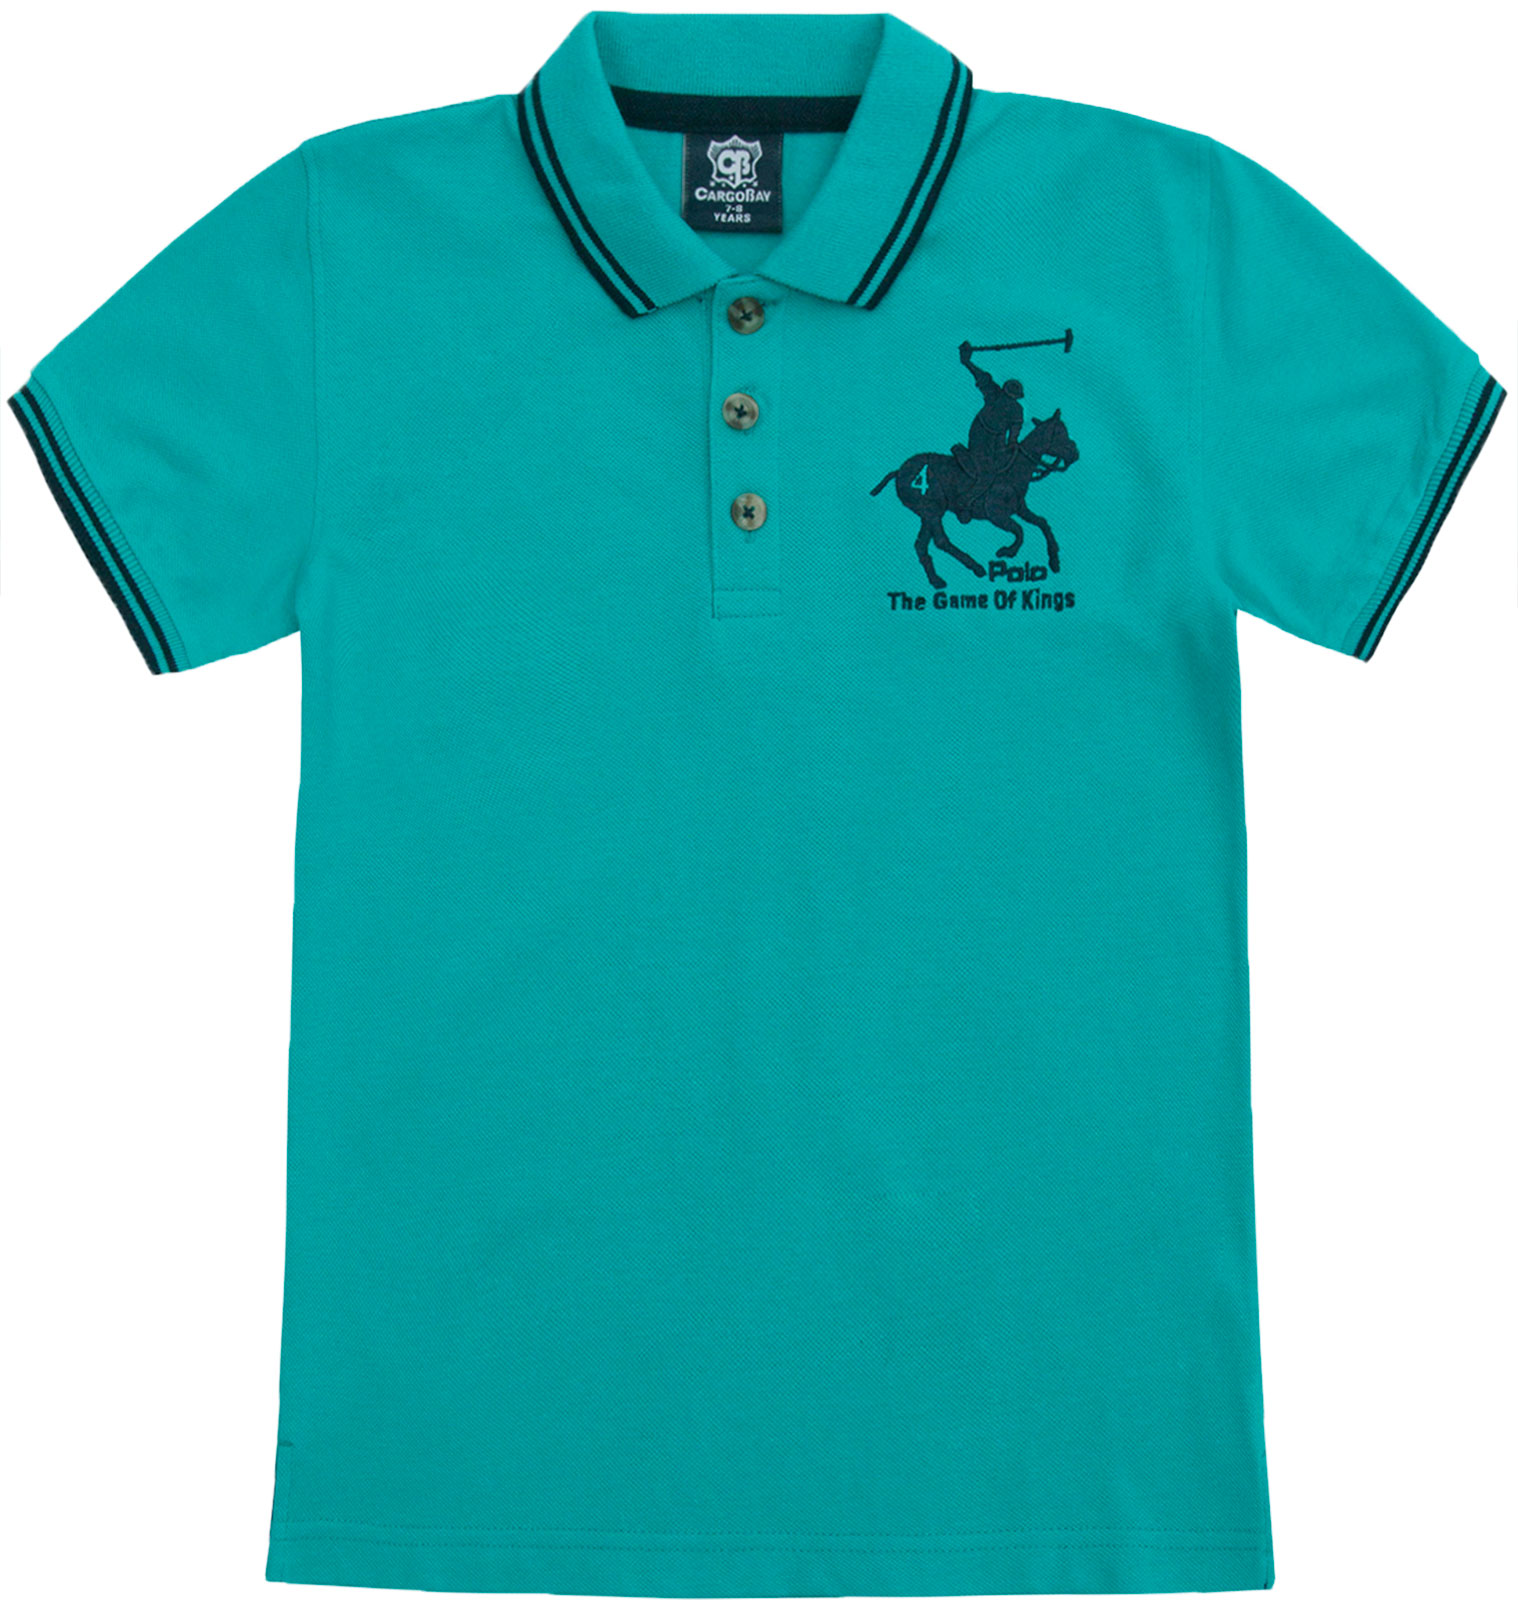 Boys-T-Shirt-Horse-Embroidery-Polo-Cotton-Top-Age-2-3-4-5-6-7-8-9-10-11-12-13-Yr thumbnail 13